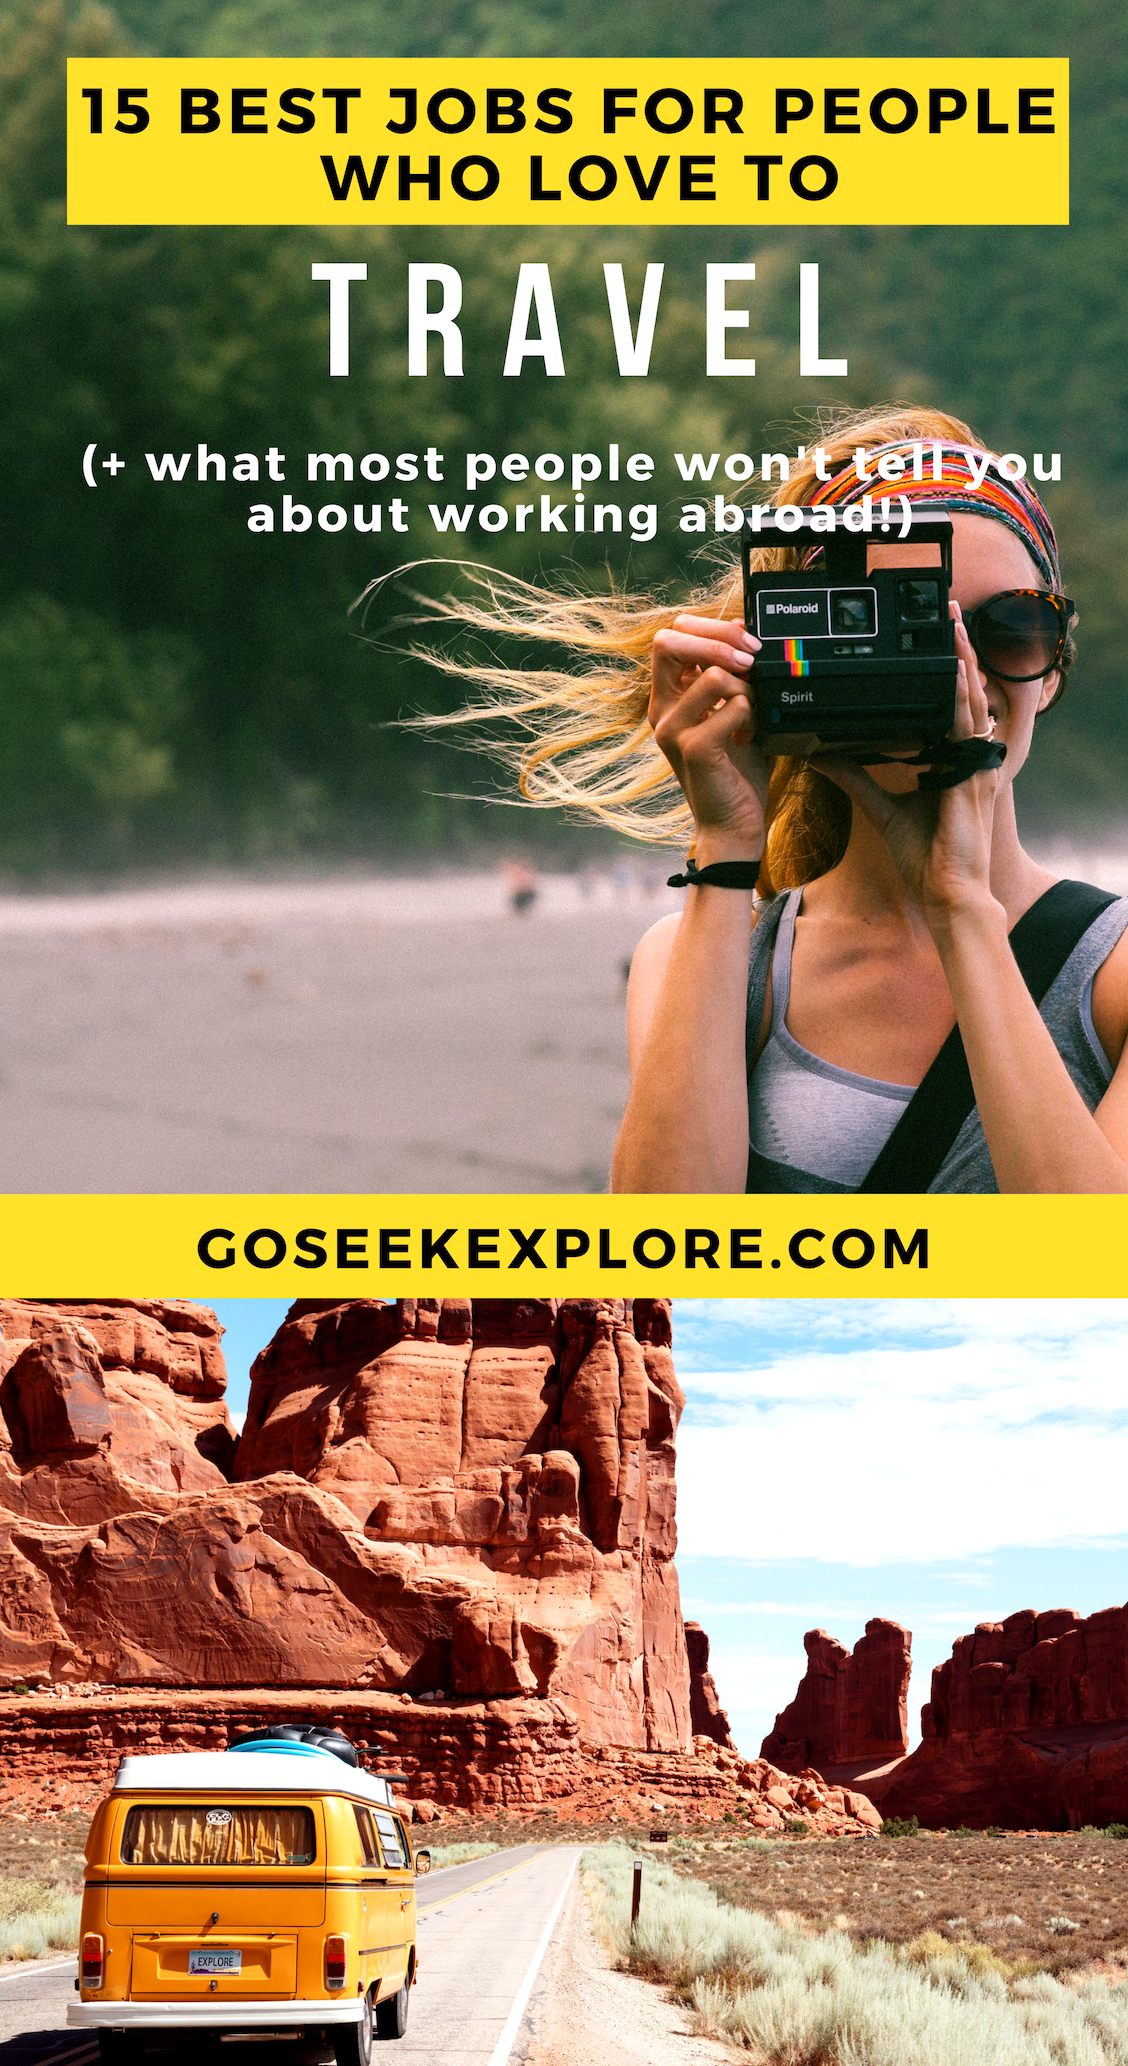 The 15 Best Jobs for People Who Love to Travel - plus what most people don't tell you about working abroad! Realistic work abroad opportunities to make travel your career! / goseekexplore.com